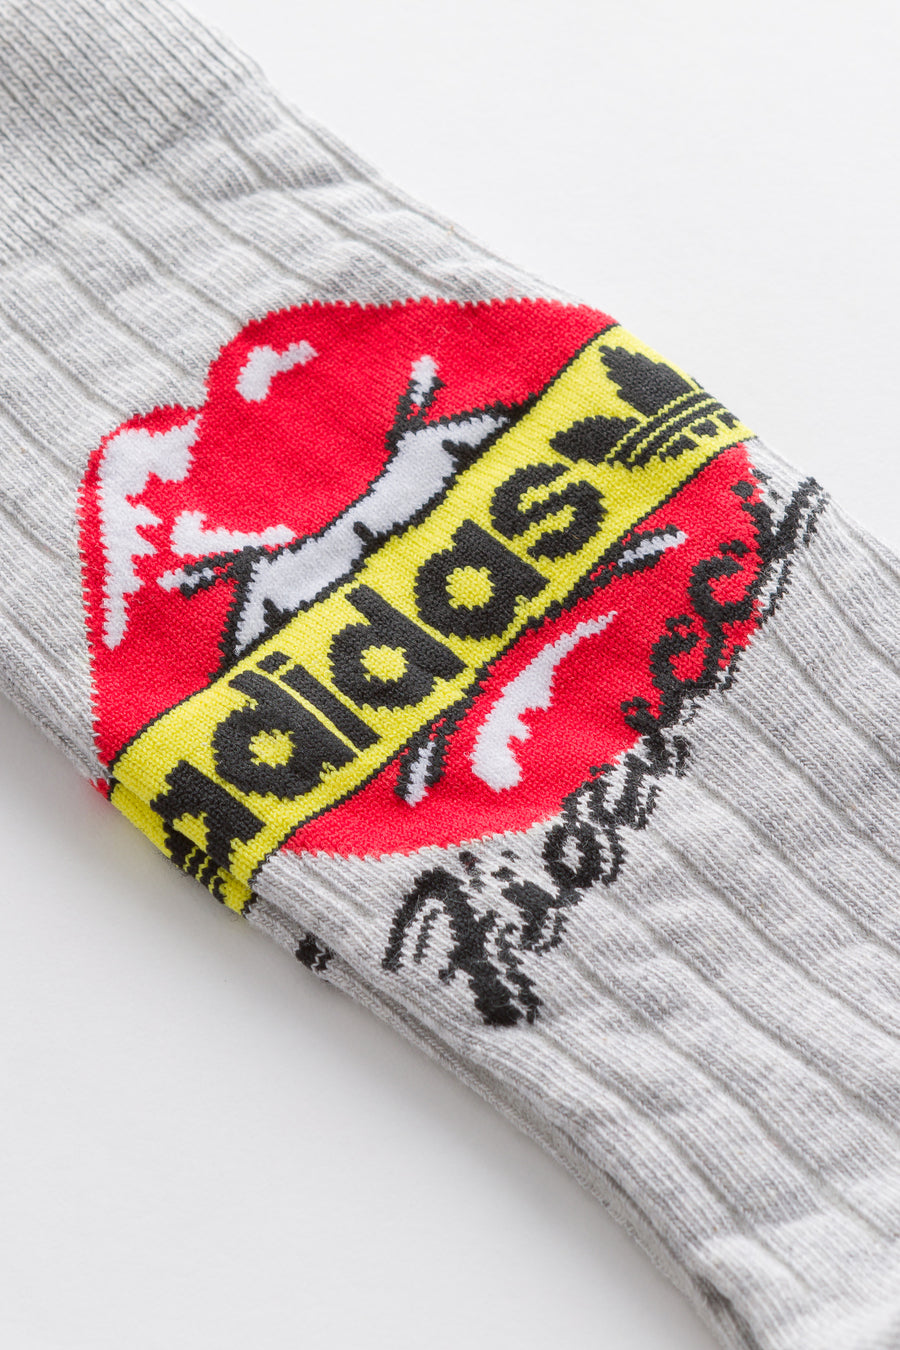 adidas Fiorucci 2 Pack Socks in Grey.White - Notre